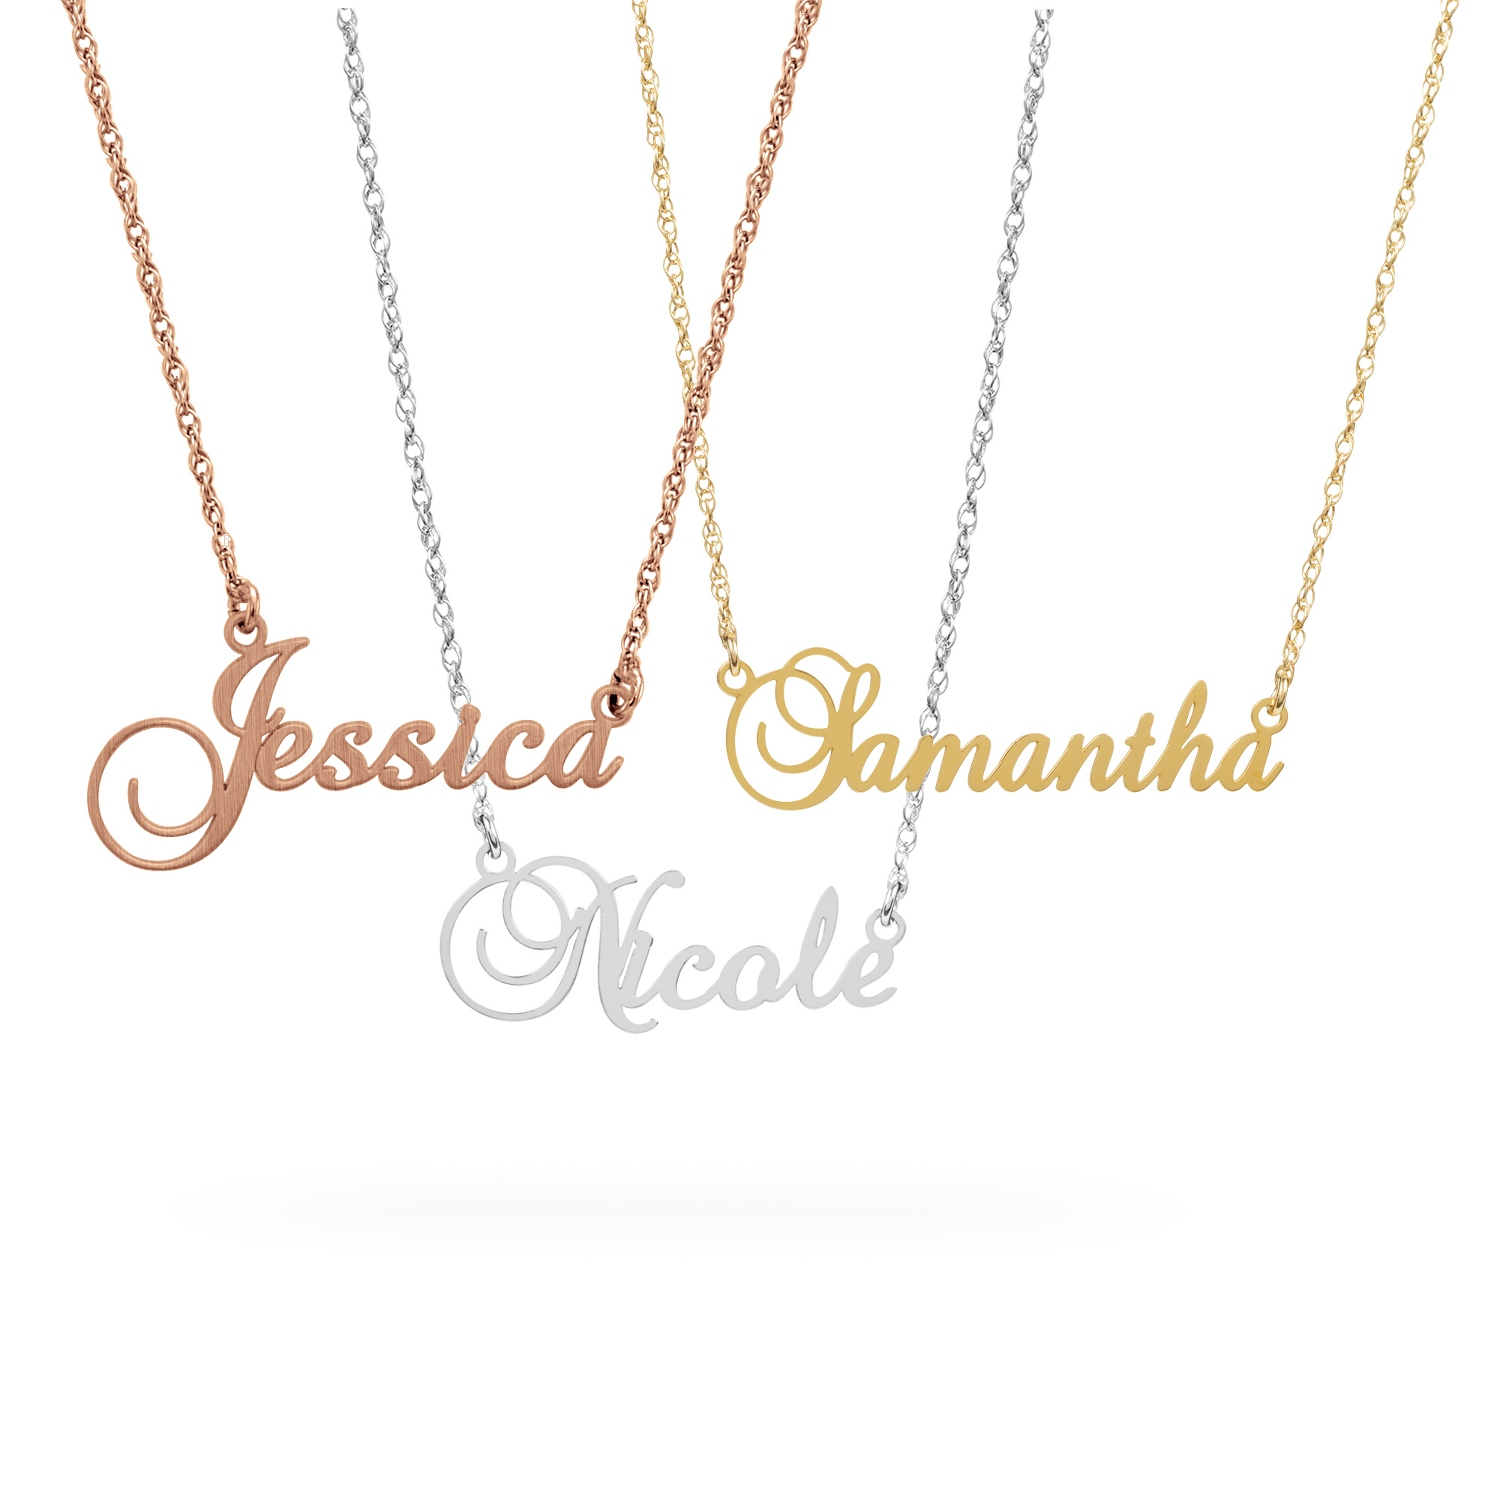 yg products necklace of danielle jewellery star name gold pendant hebrew d waves